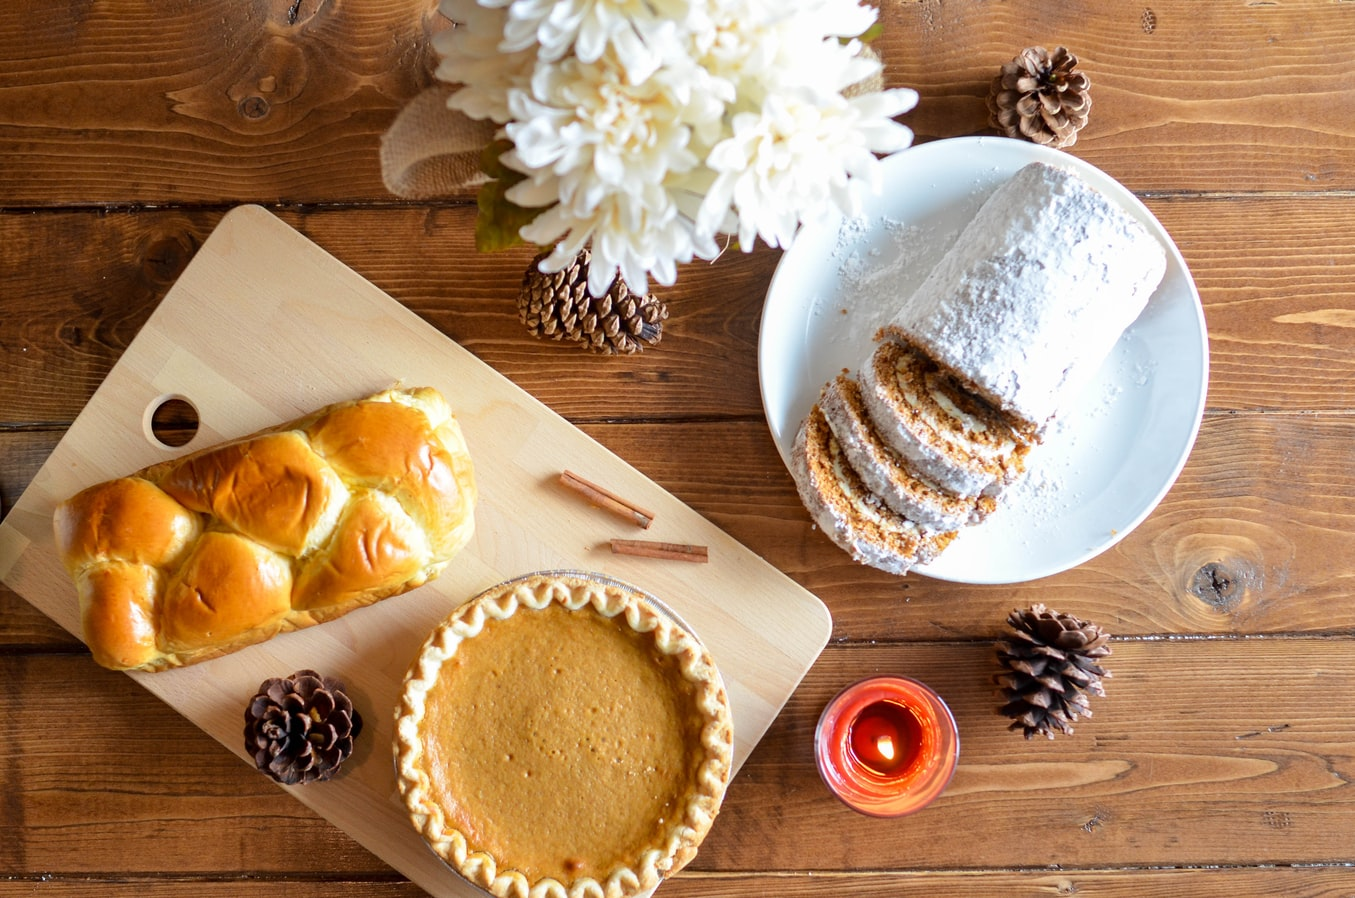 Thanksgiving apartment marketing ideas, multifamily, holiday season, apartment marketing, Thanksgiving